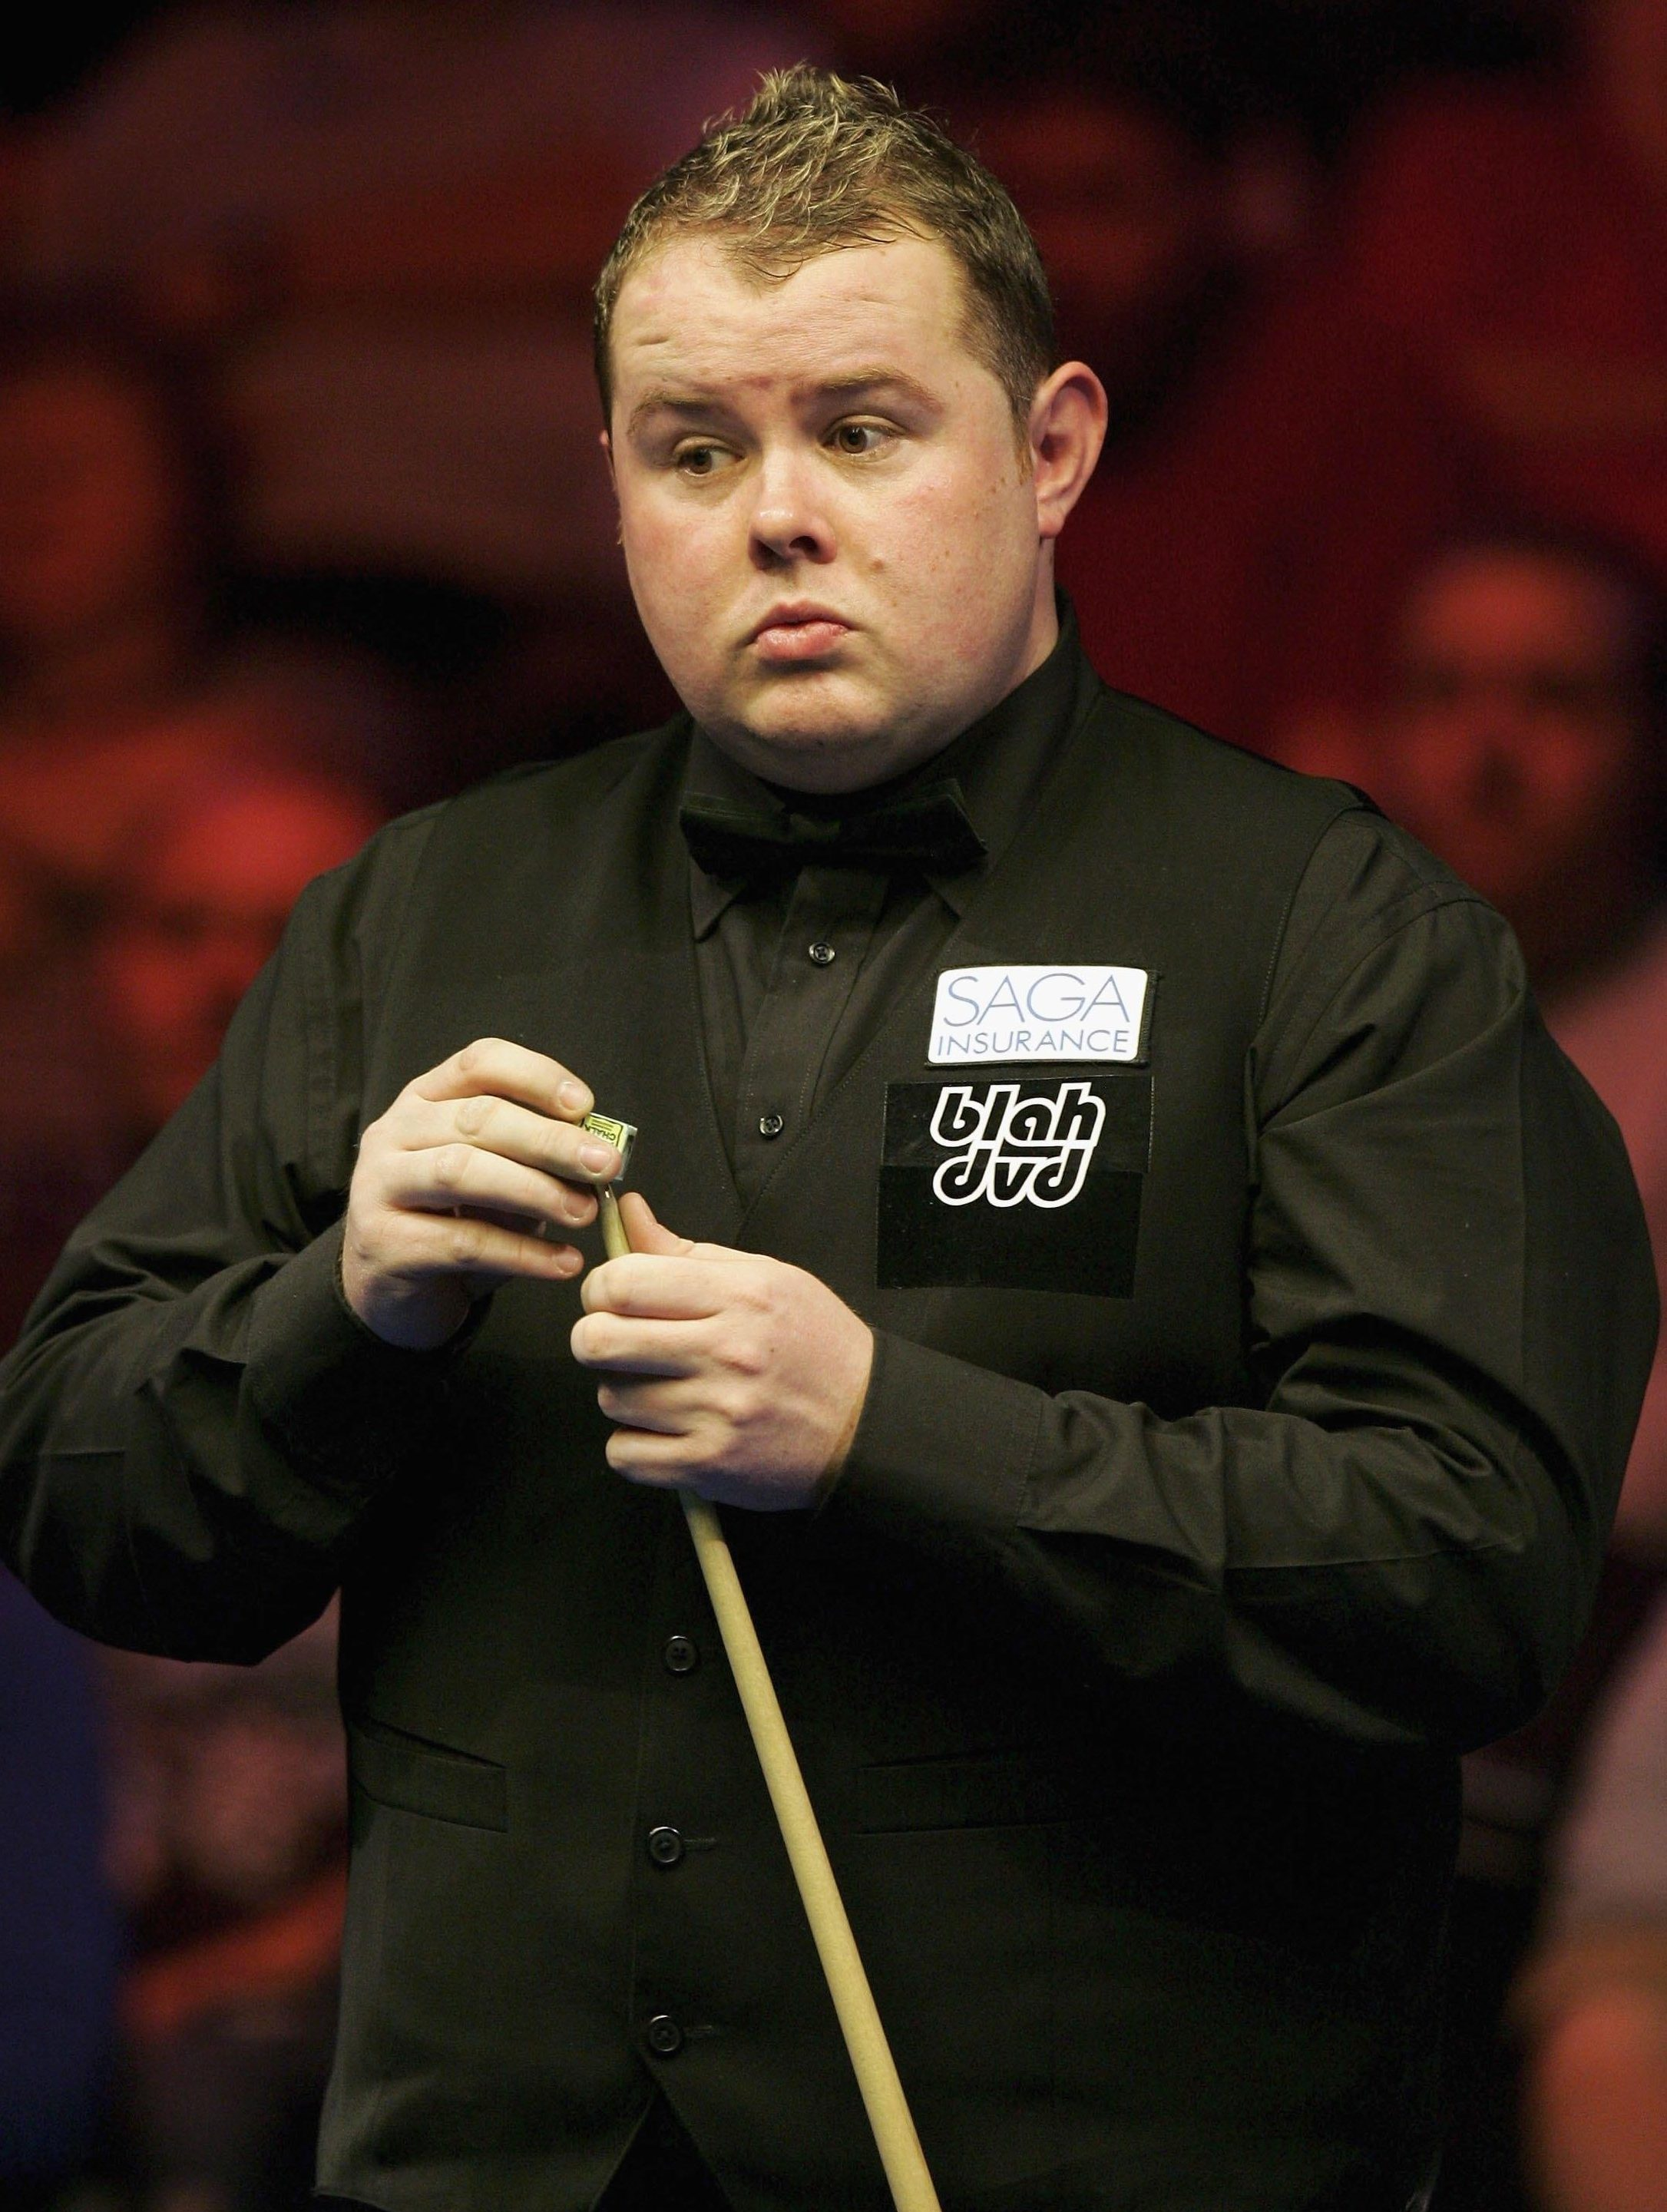 Stephen Lee was banned in 2013 for match-fixing and cannot play until 2024